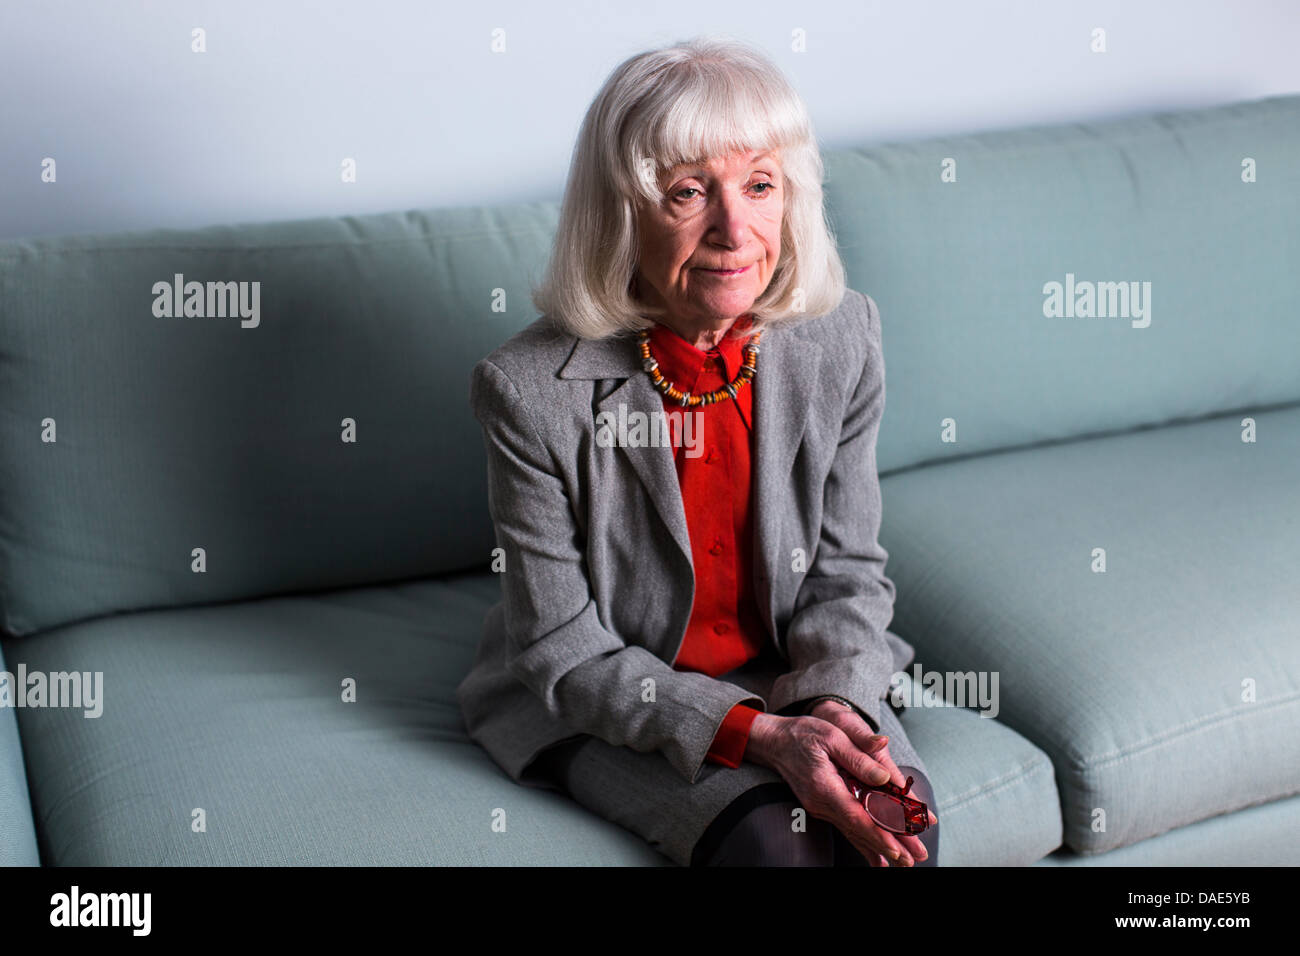 Senior woman sitting on sofa with blank expression - Stock Image